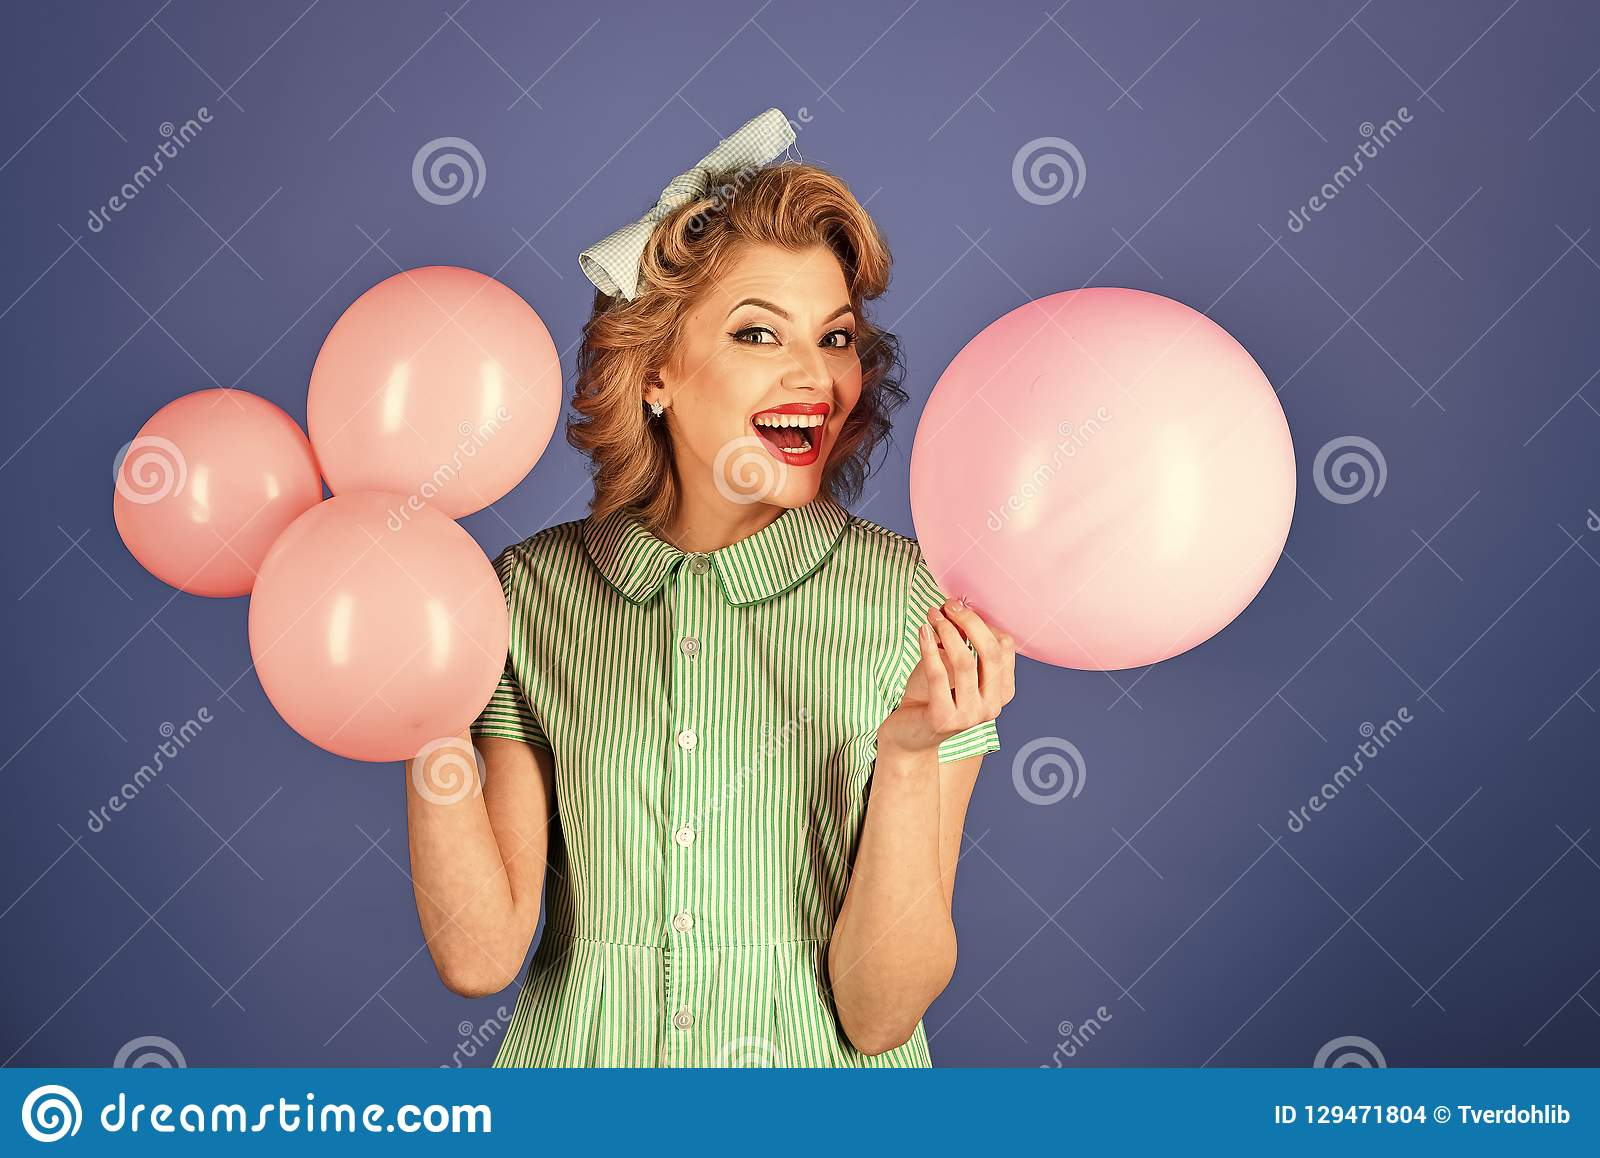 Retro woman with party balloons, celebration.